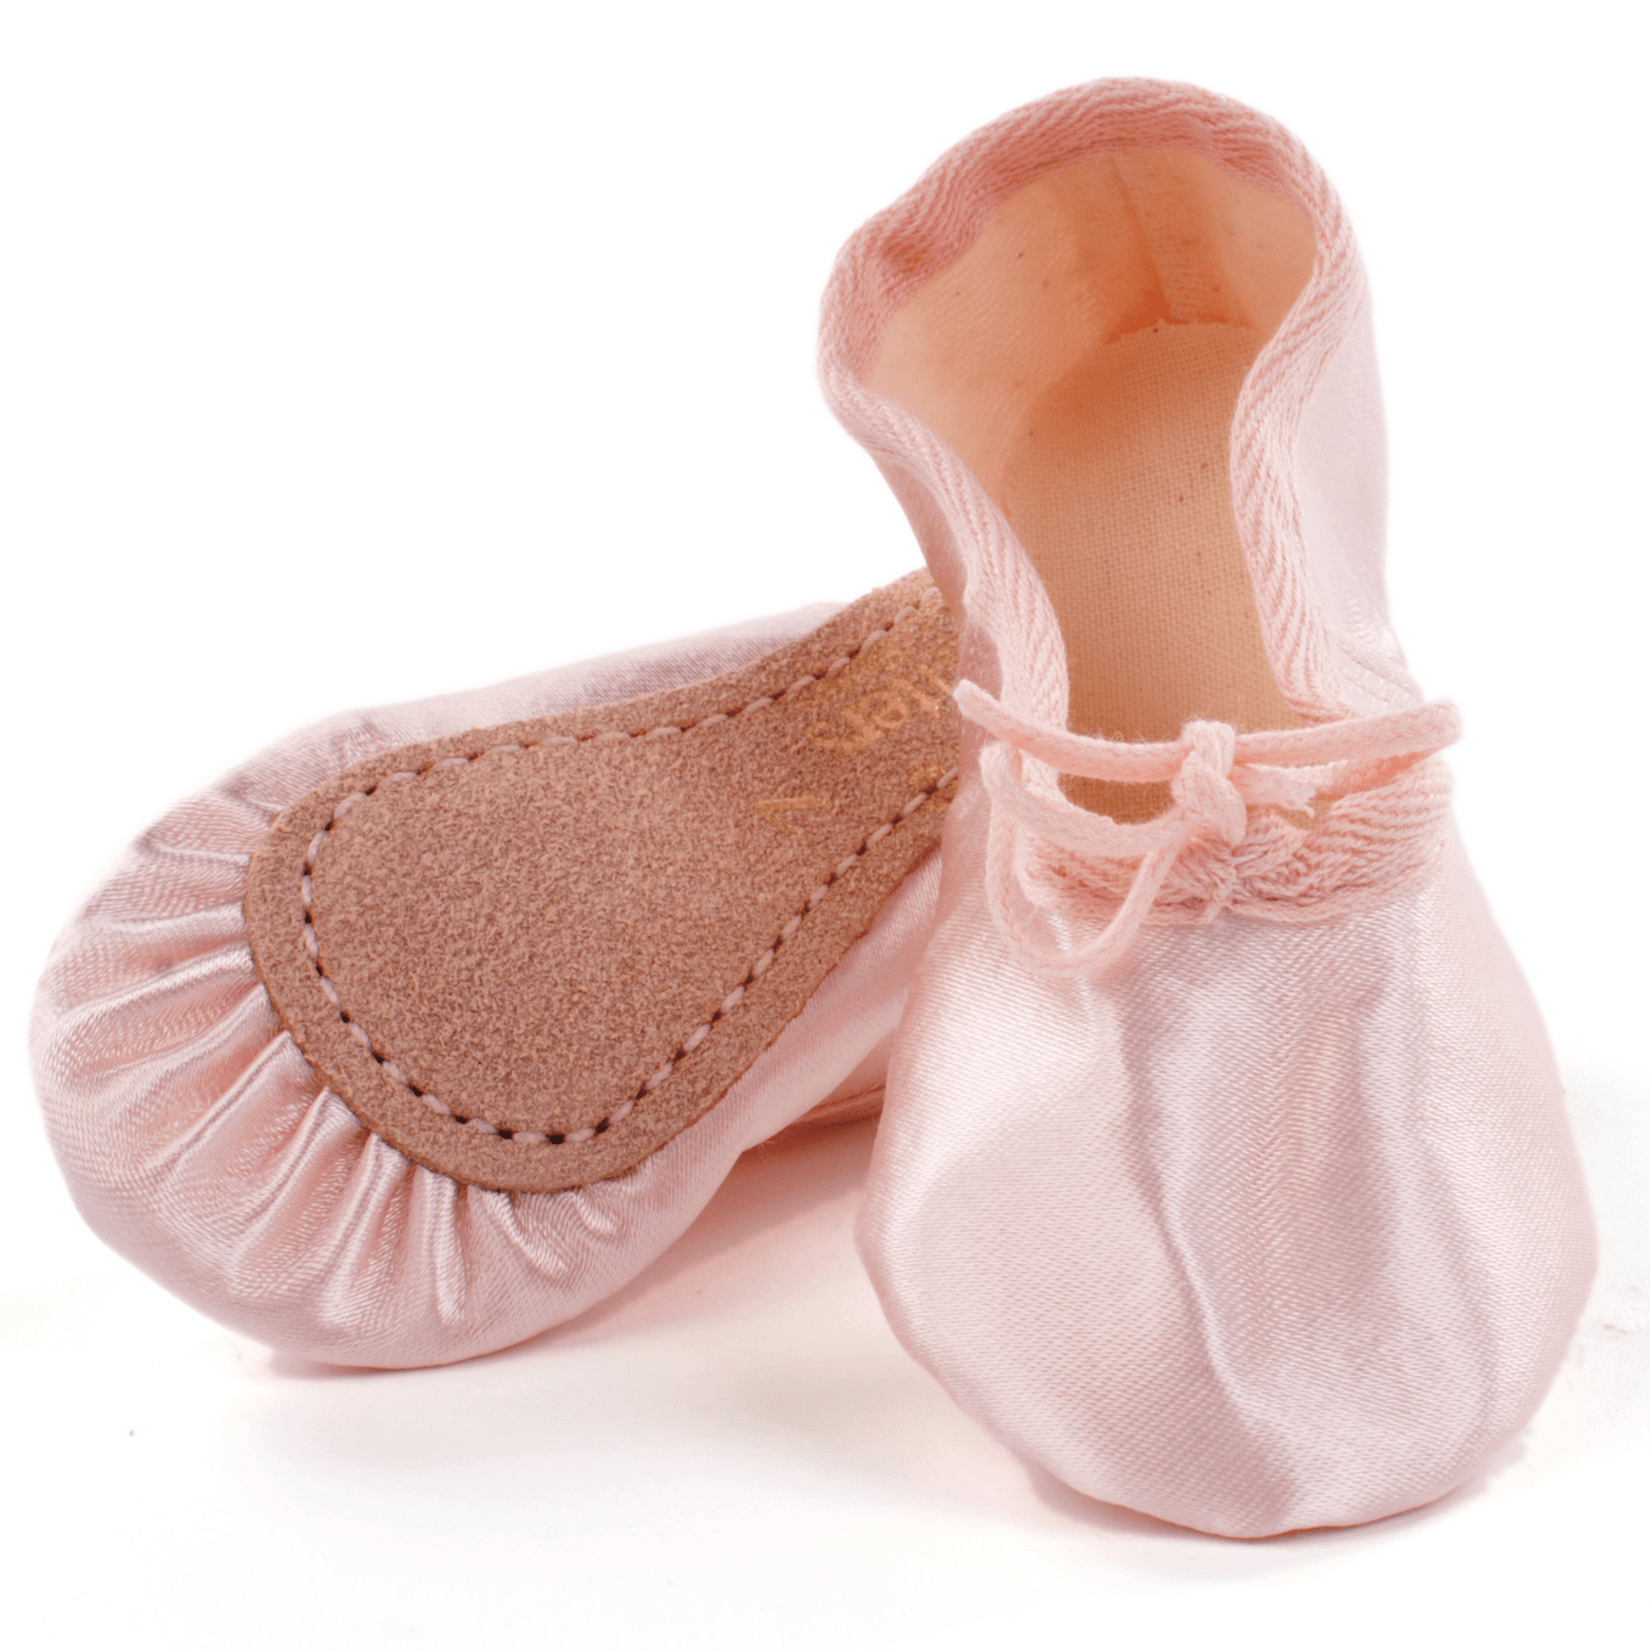 9dd6fd0d0843 Pink Satin Ballet Shoes for babyballet class